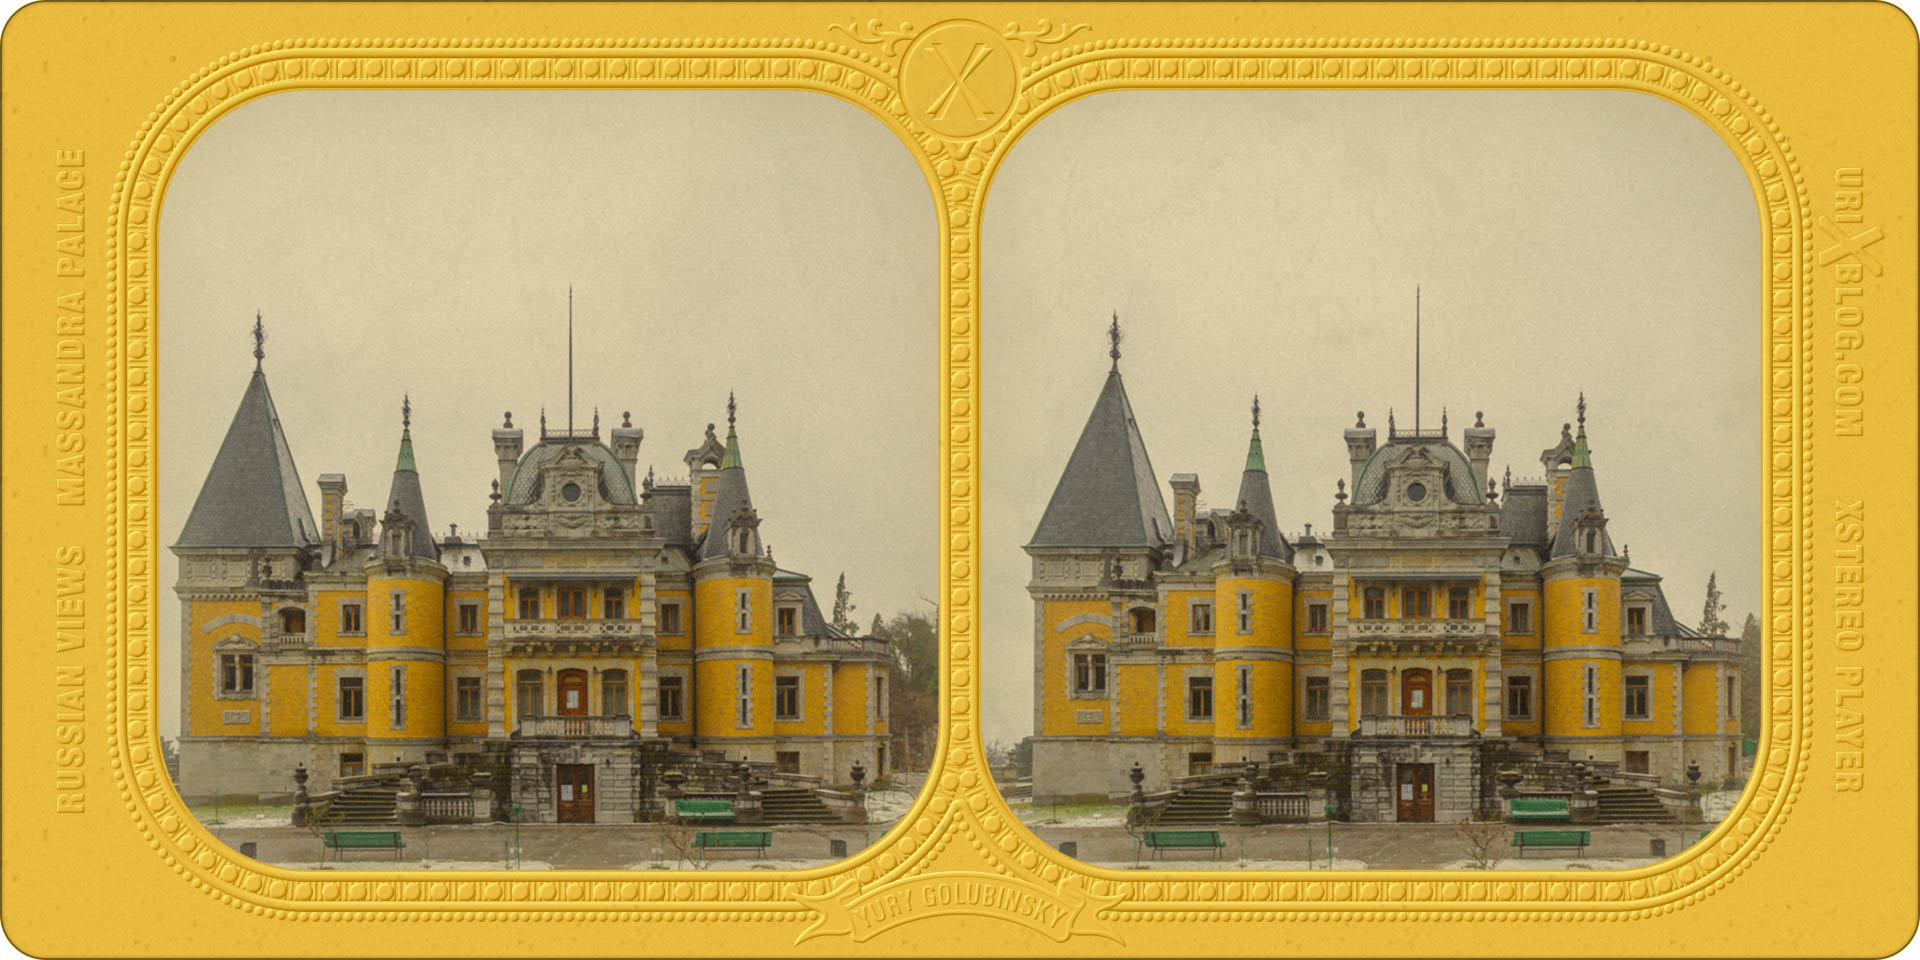 Massandra, Massandra palace, Alexander 3 palace, Yalta, Crimea, Russia, 3D, stereo pair, parallel-eyed, parallel view, stereoscopic, 2016, winter, snow, day